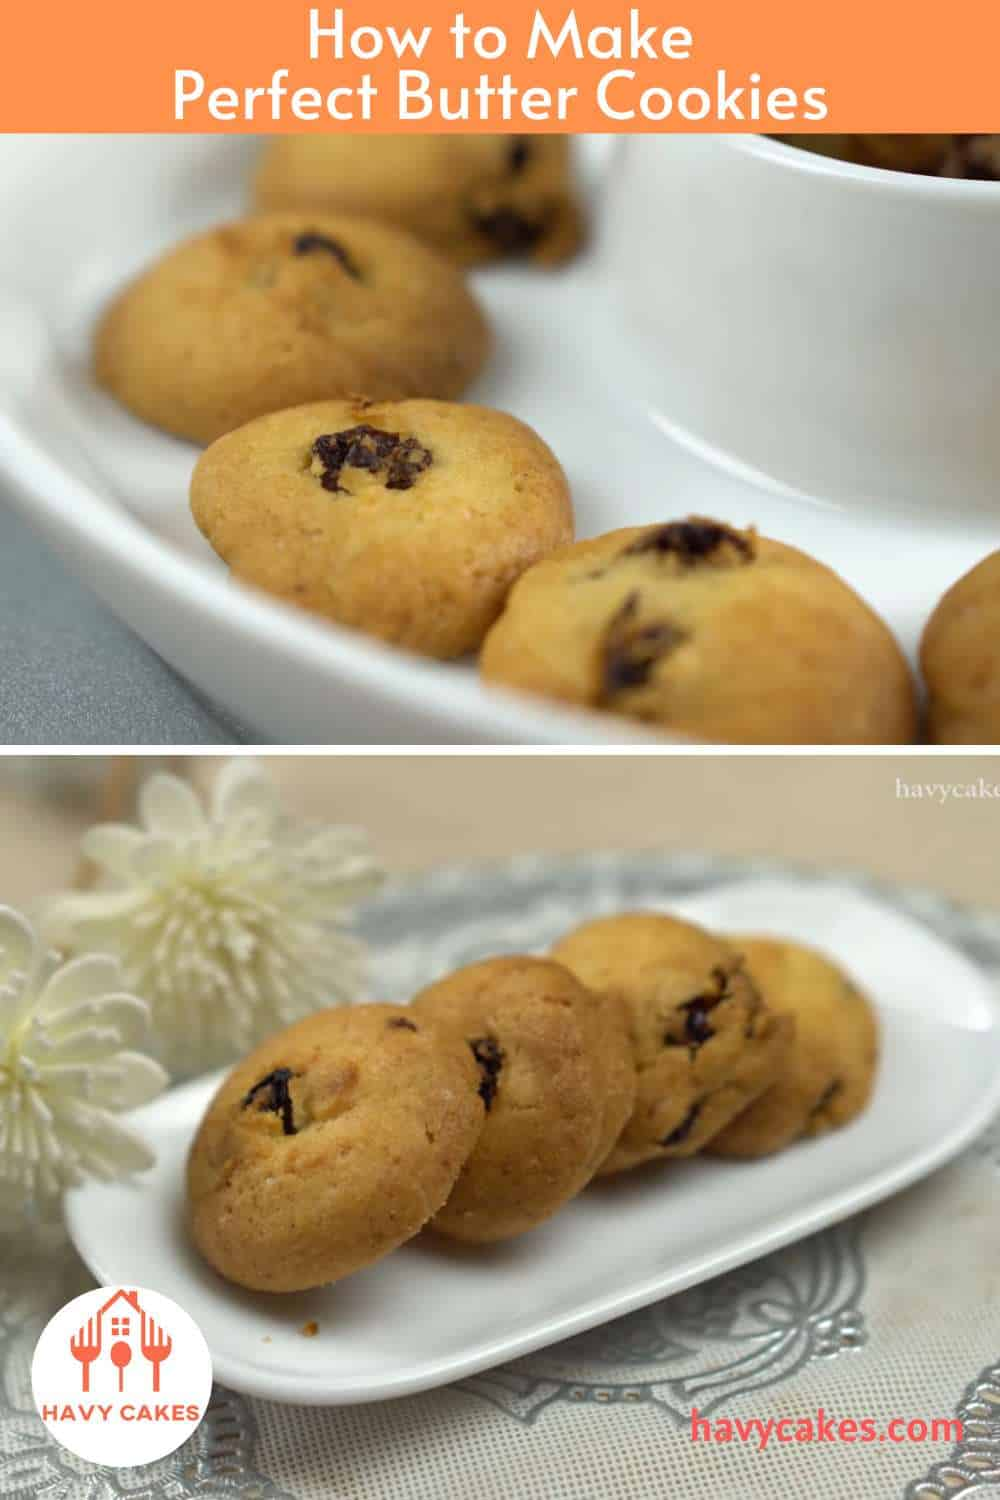 How to make Butter Cookies: Intro